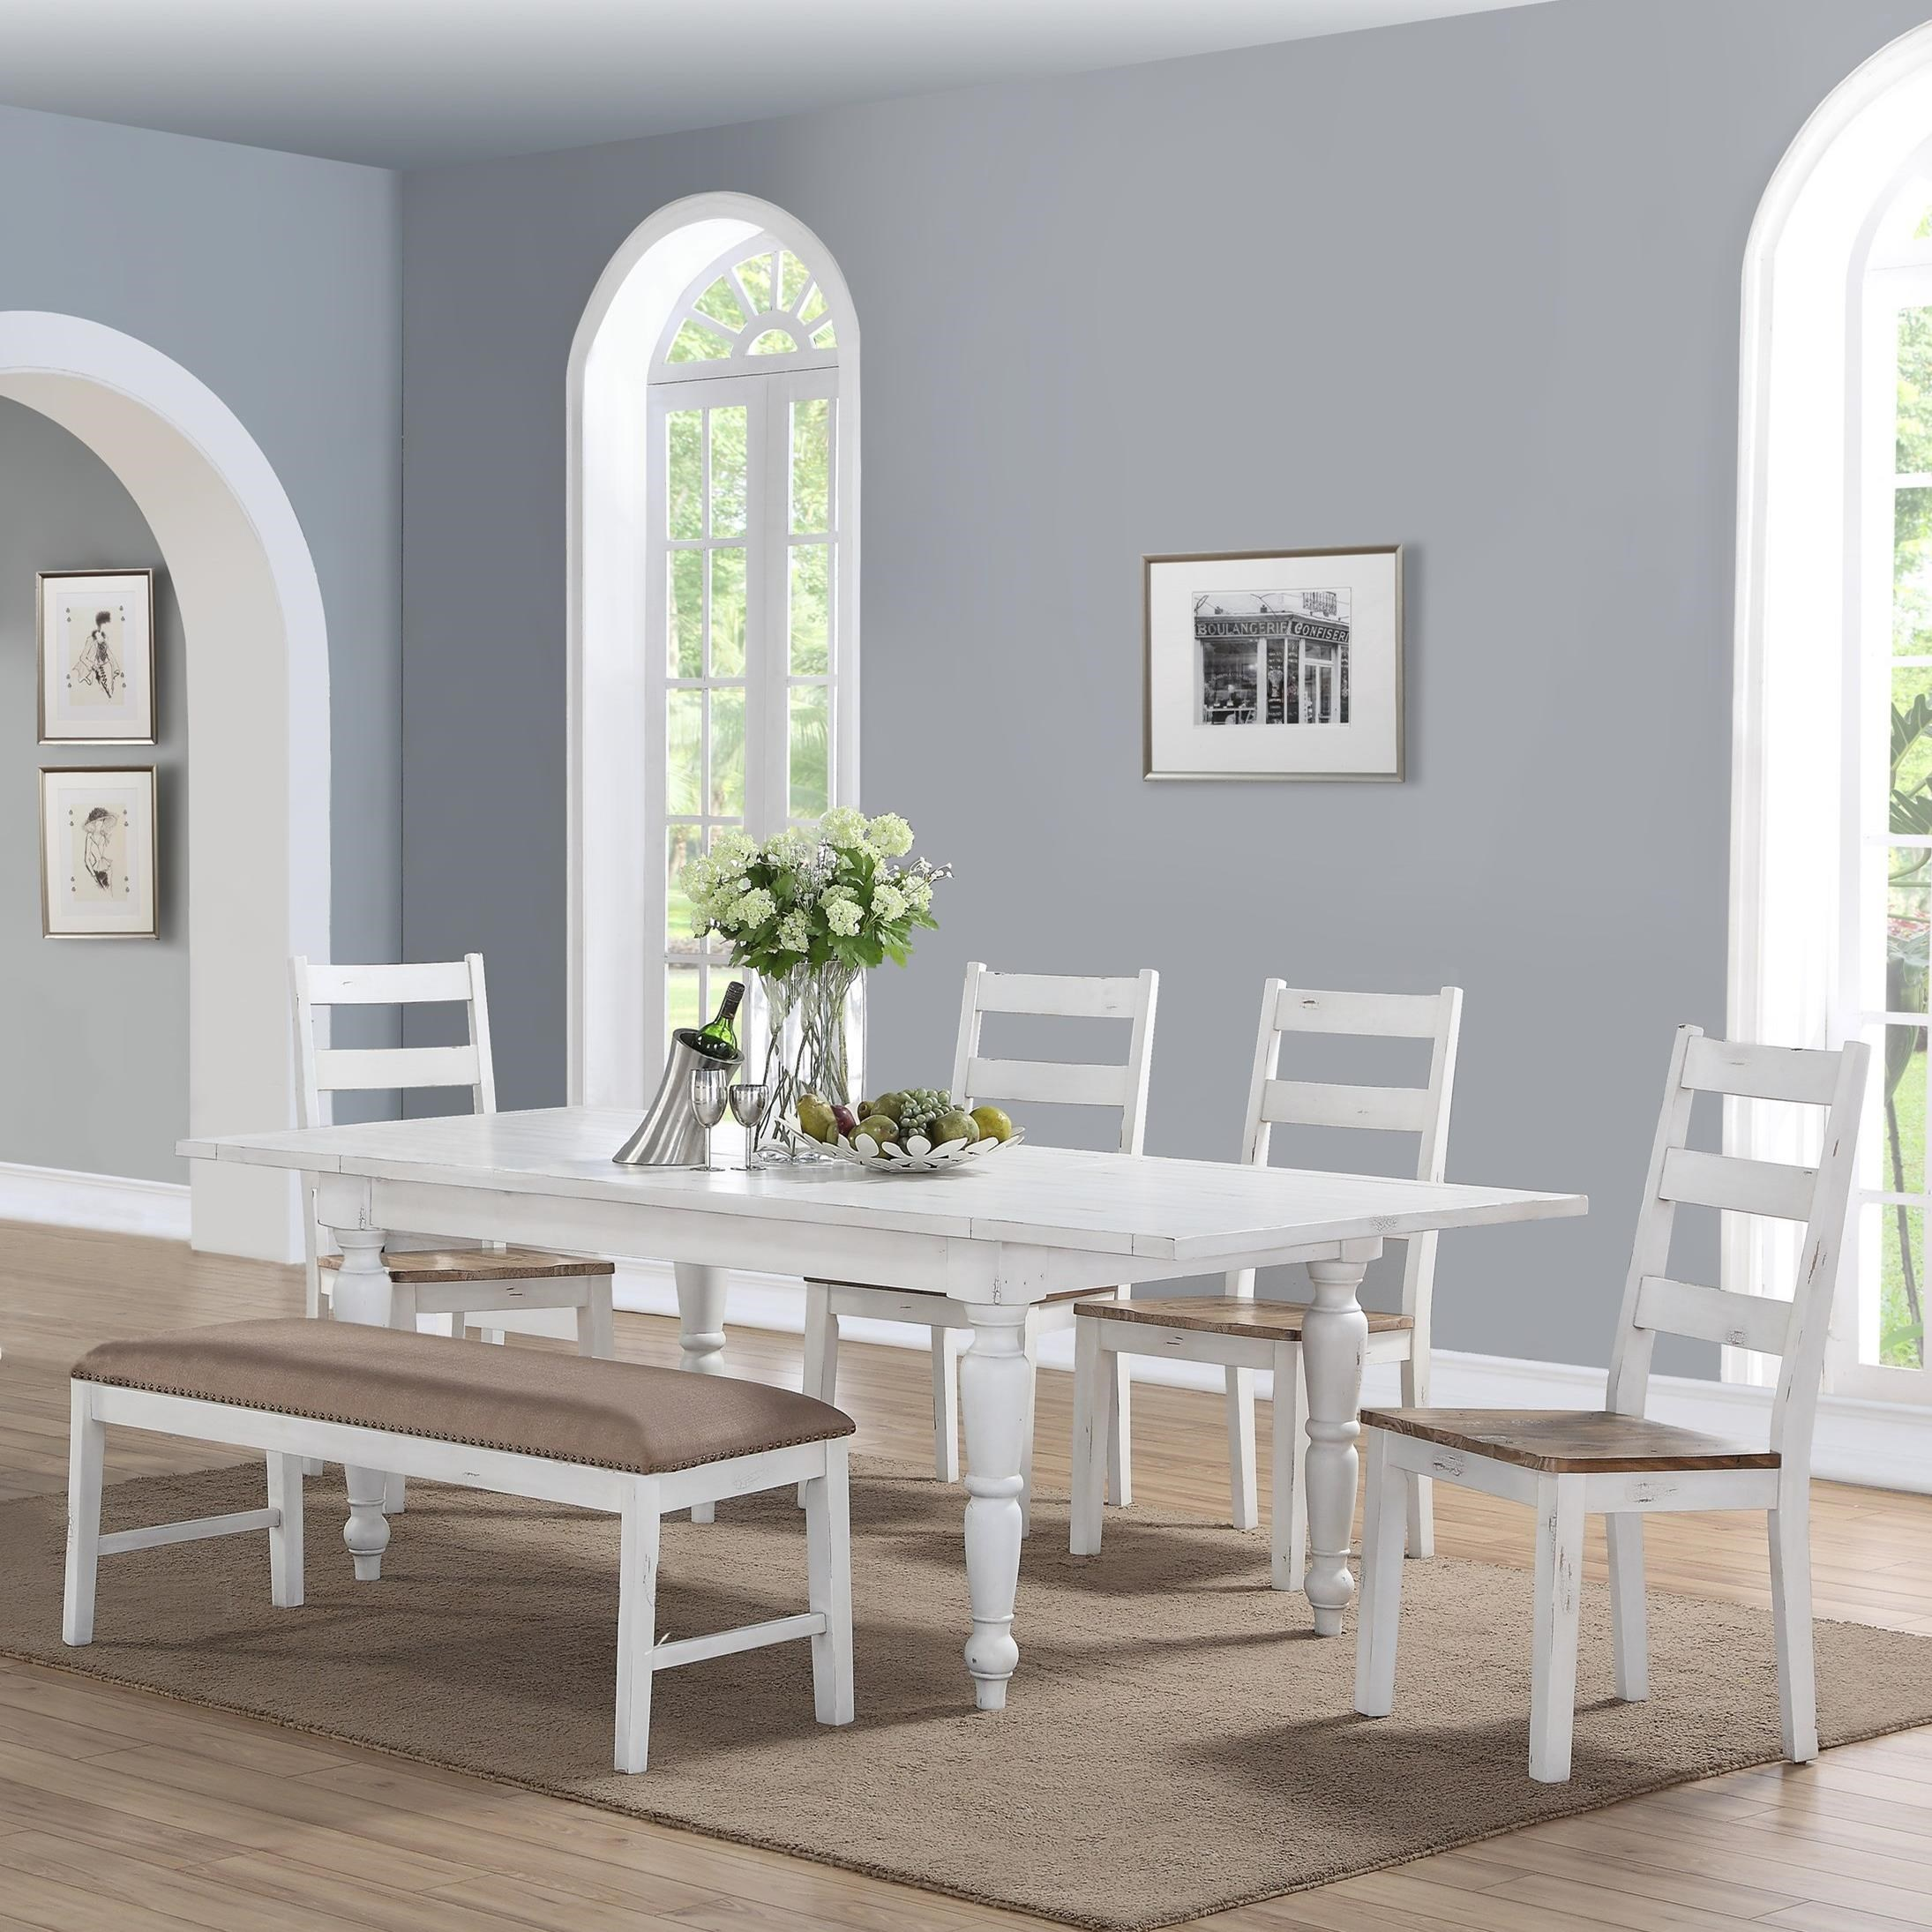 Abaco Dining Table and Chair Set with Bench by Emerald at Northeast Factory Direct